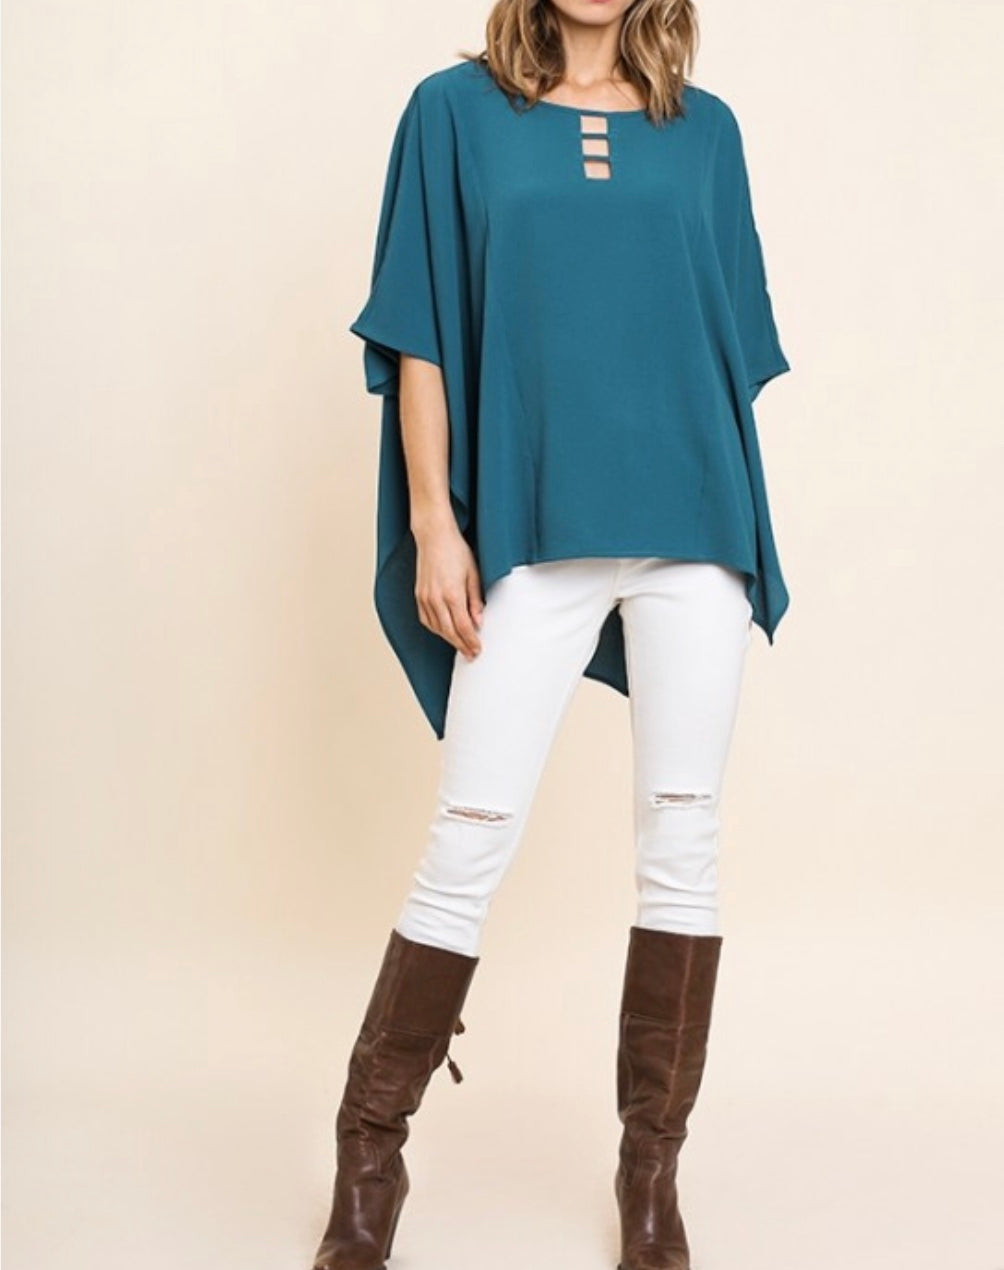 Dark teal Umgee top